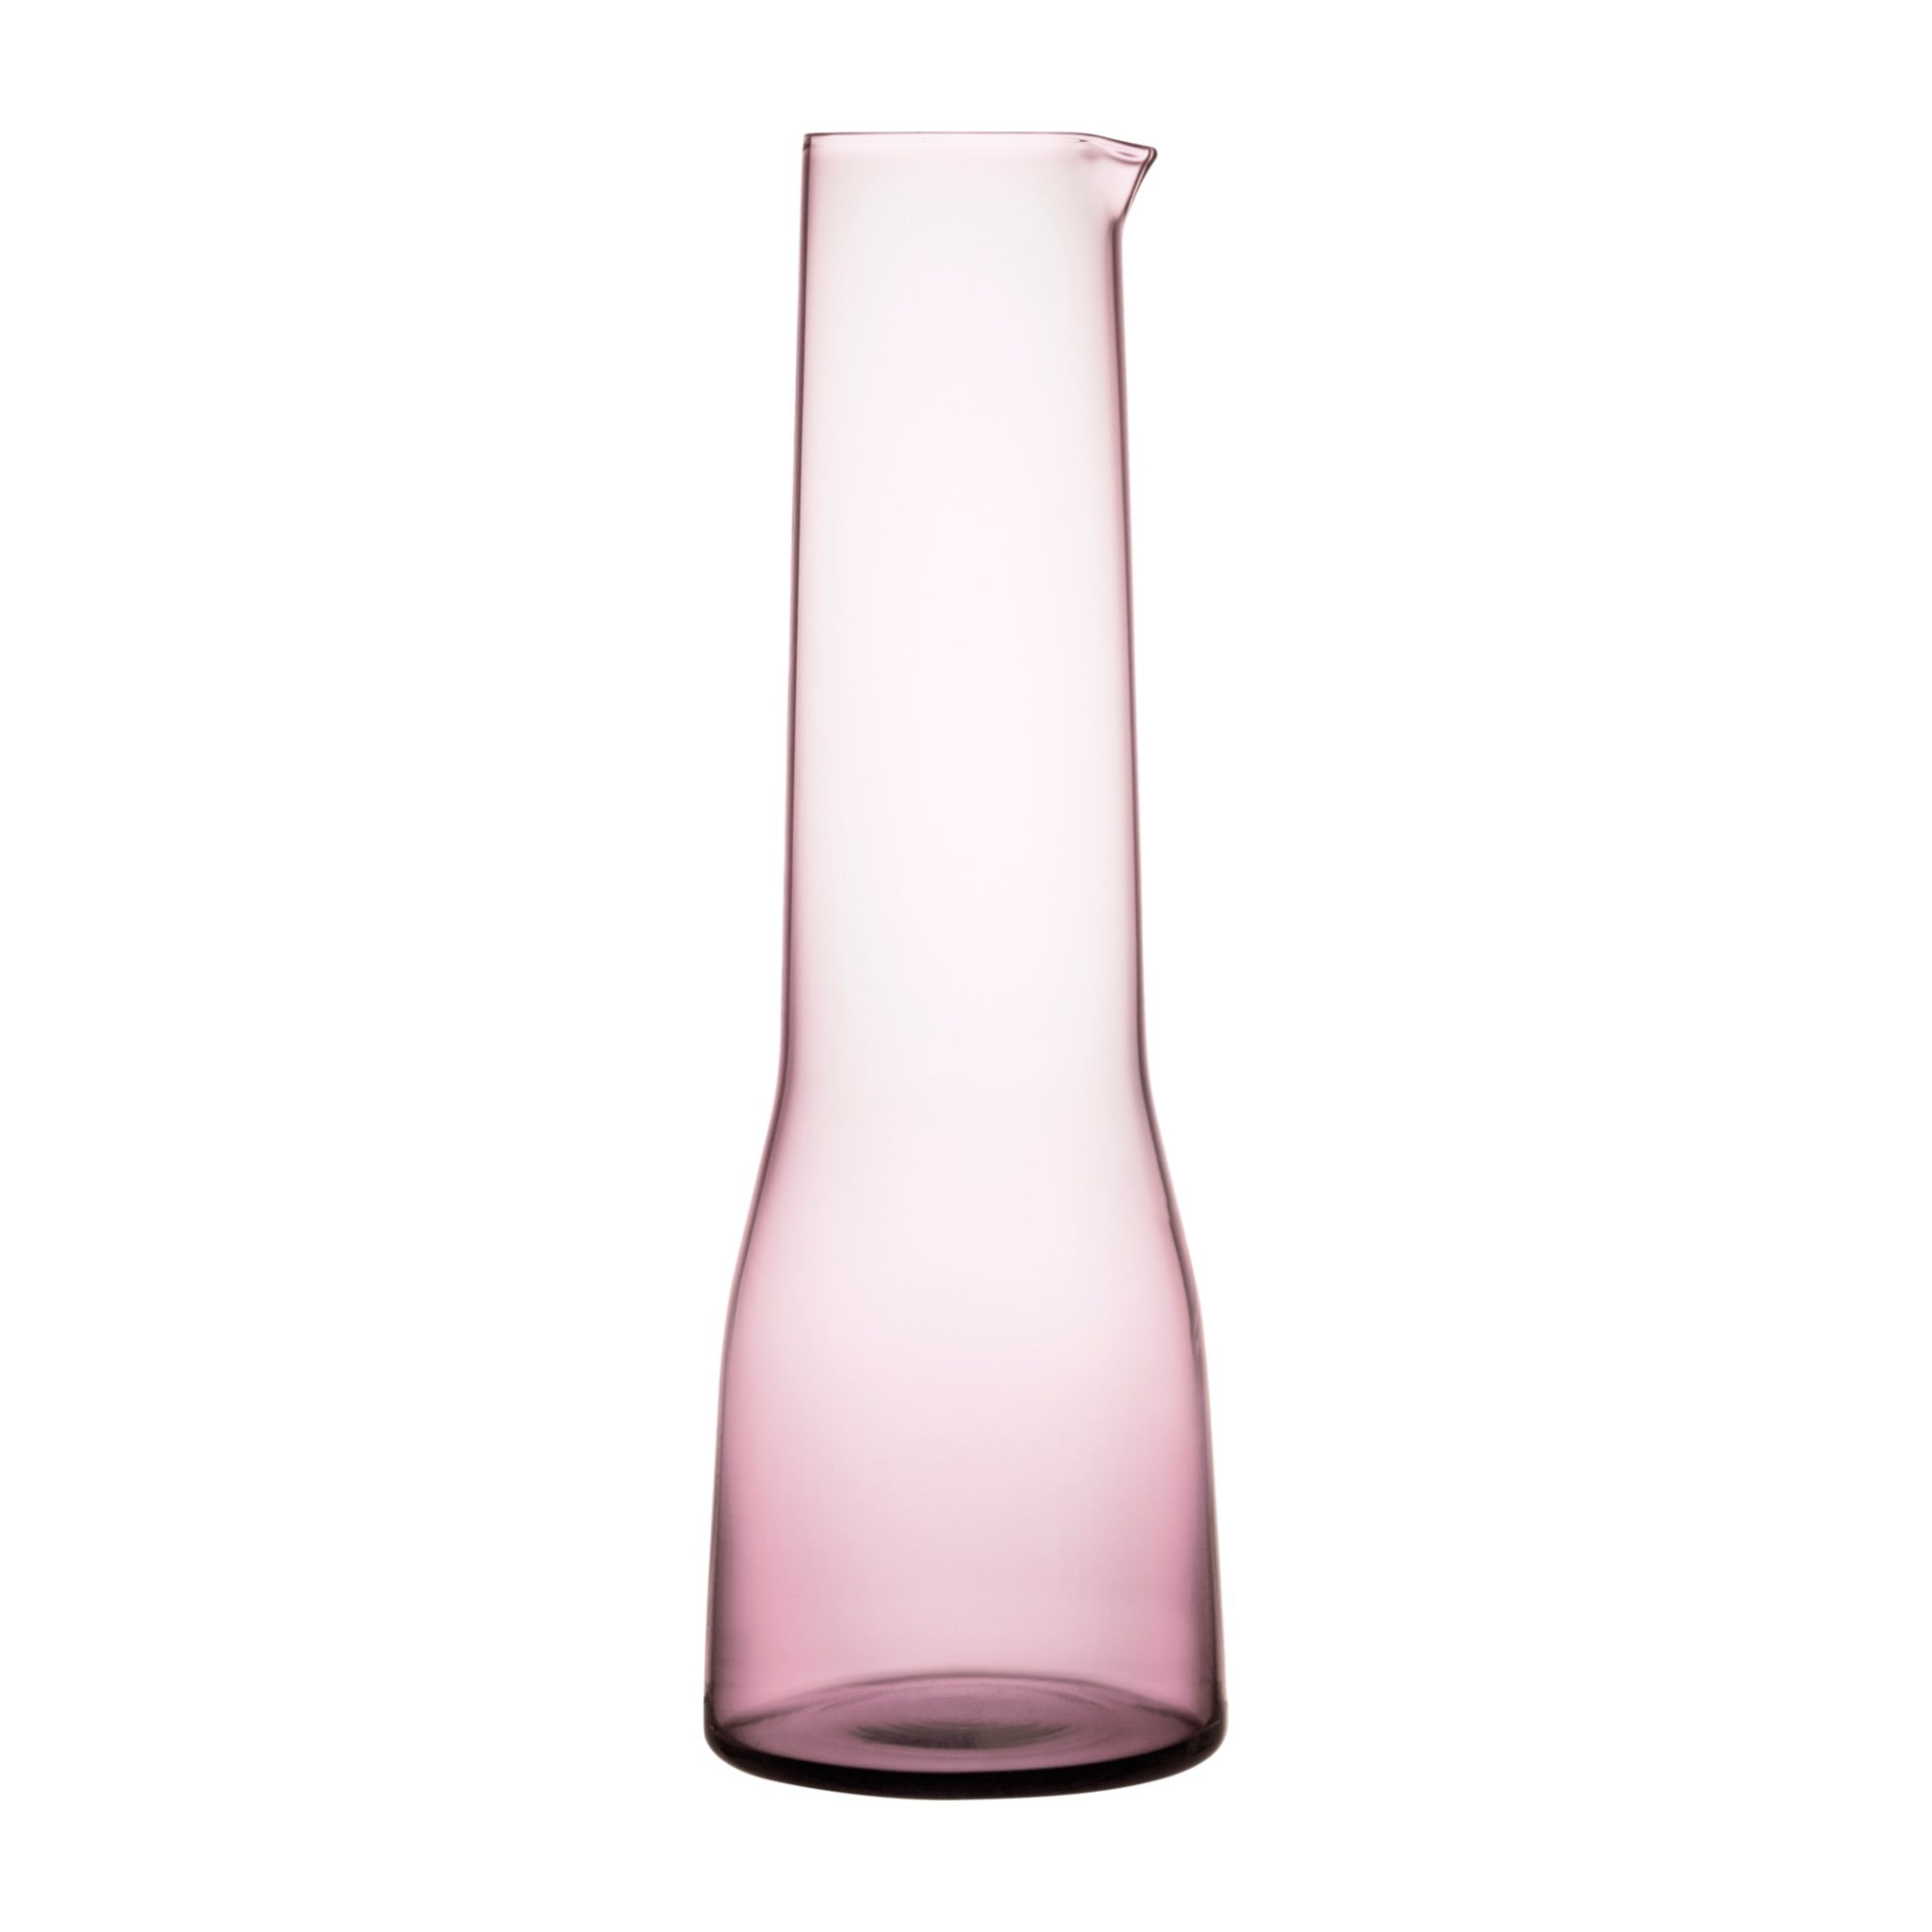 Essence Decanter Carafe